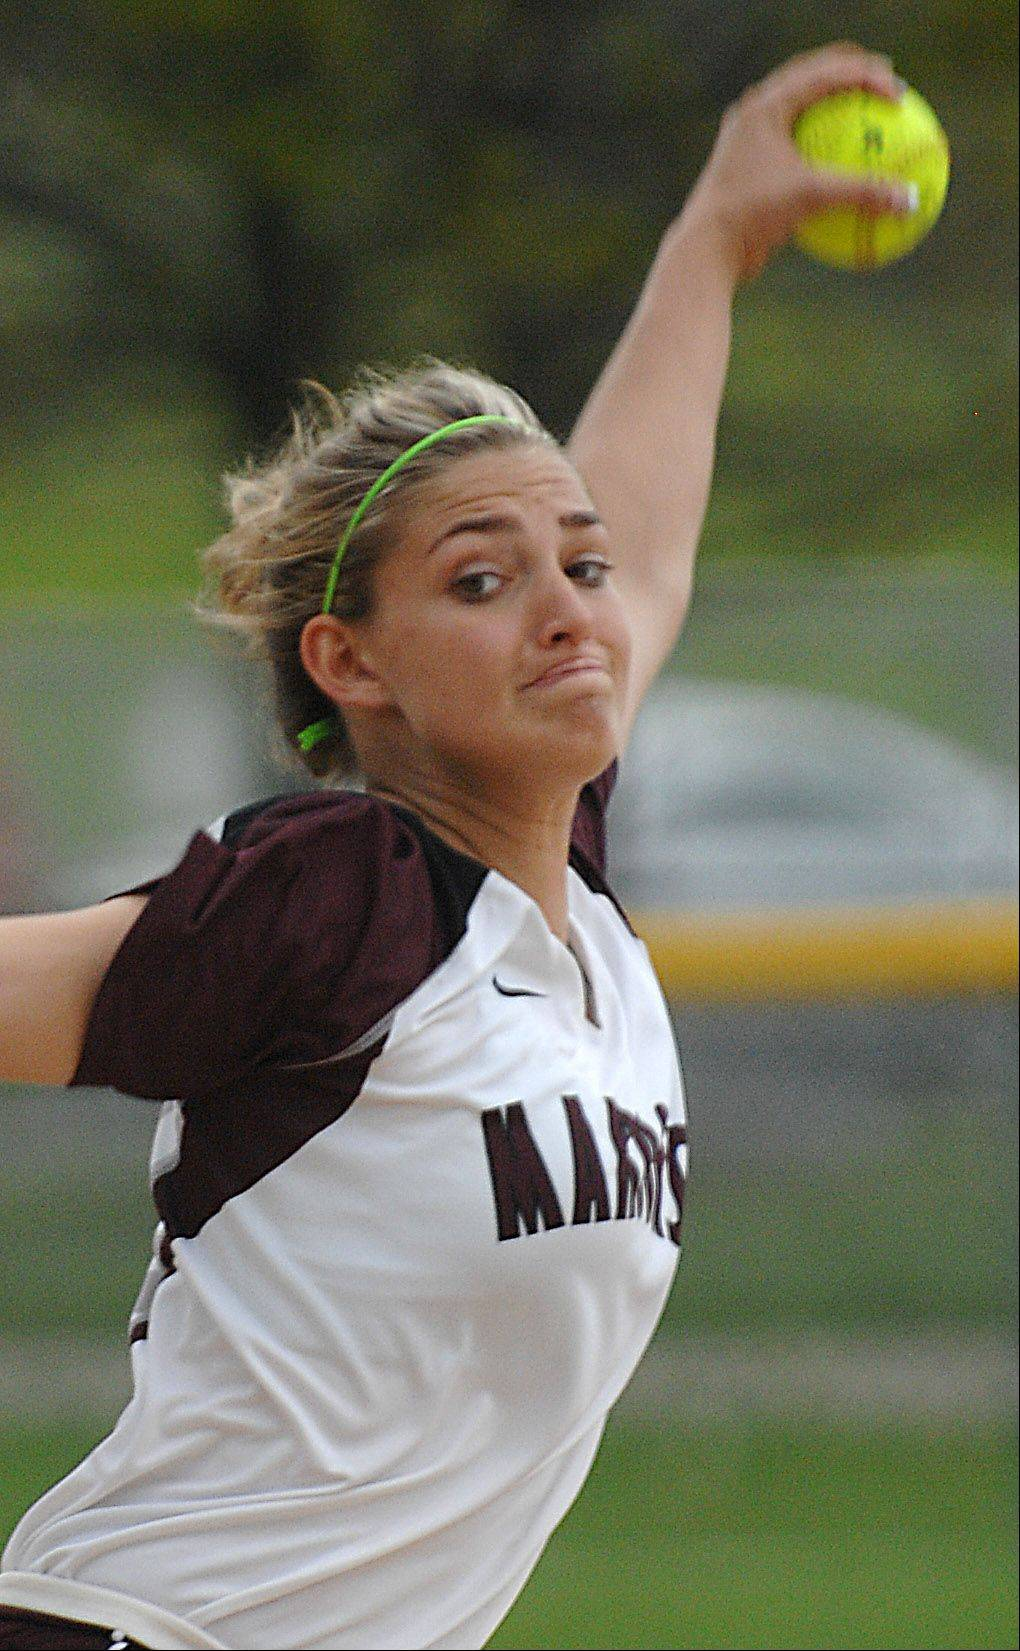 Elgin senior Hannah Perryman delivers against Batavia Wednesday in Elgin. She struck out 15 batters and threw a 1-hitter in the Maroons' 1-0 win.